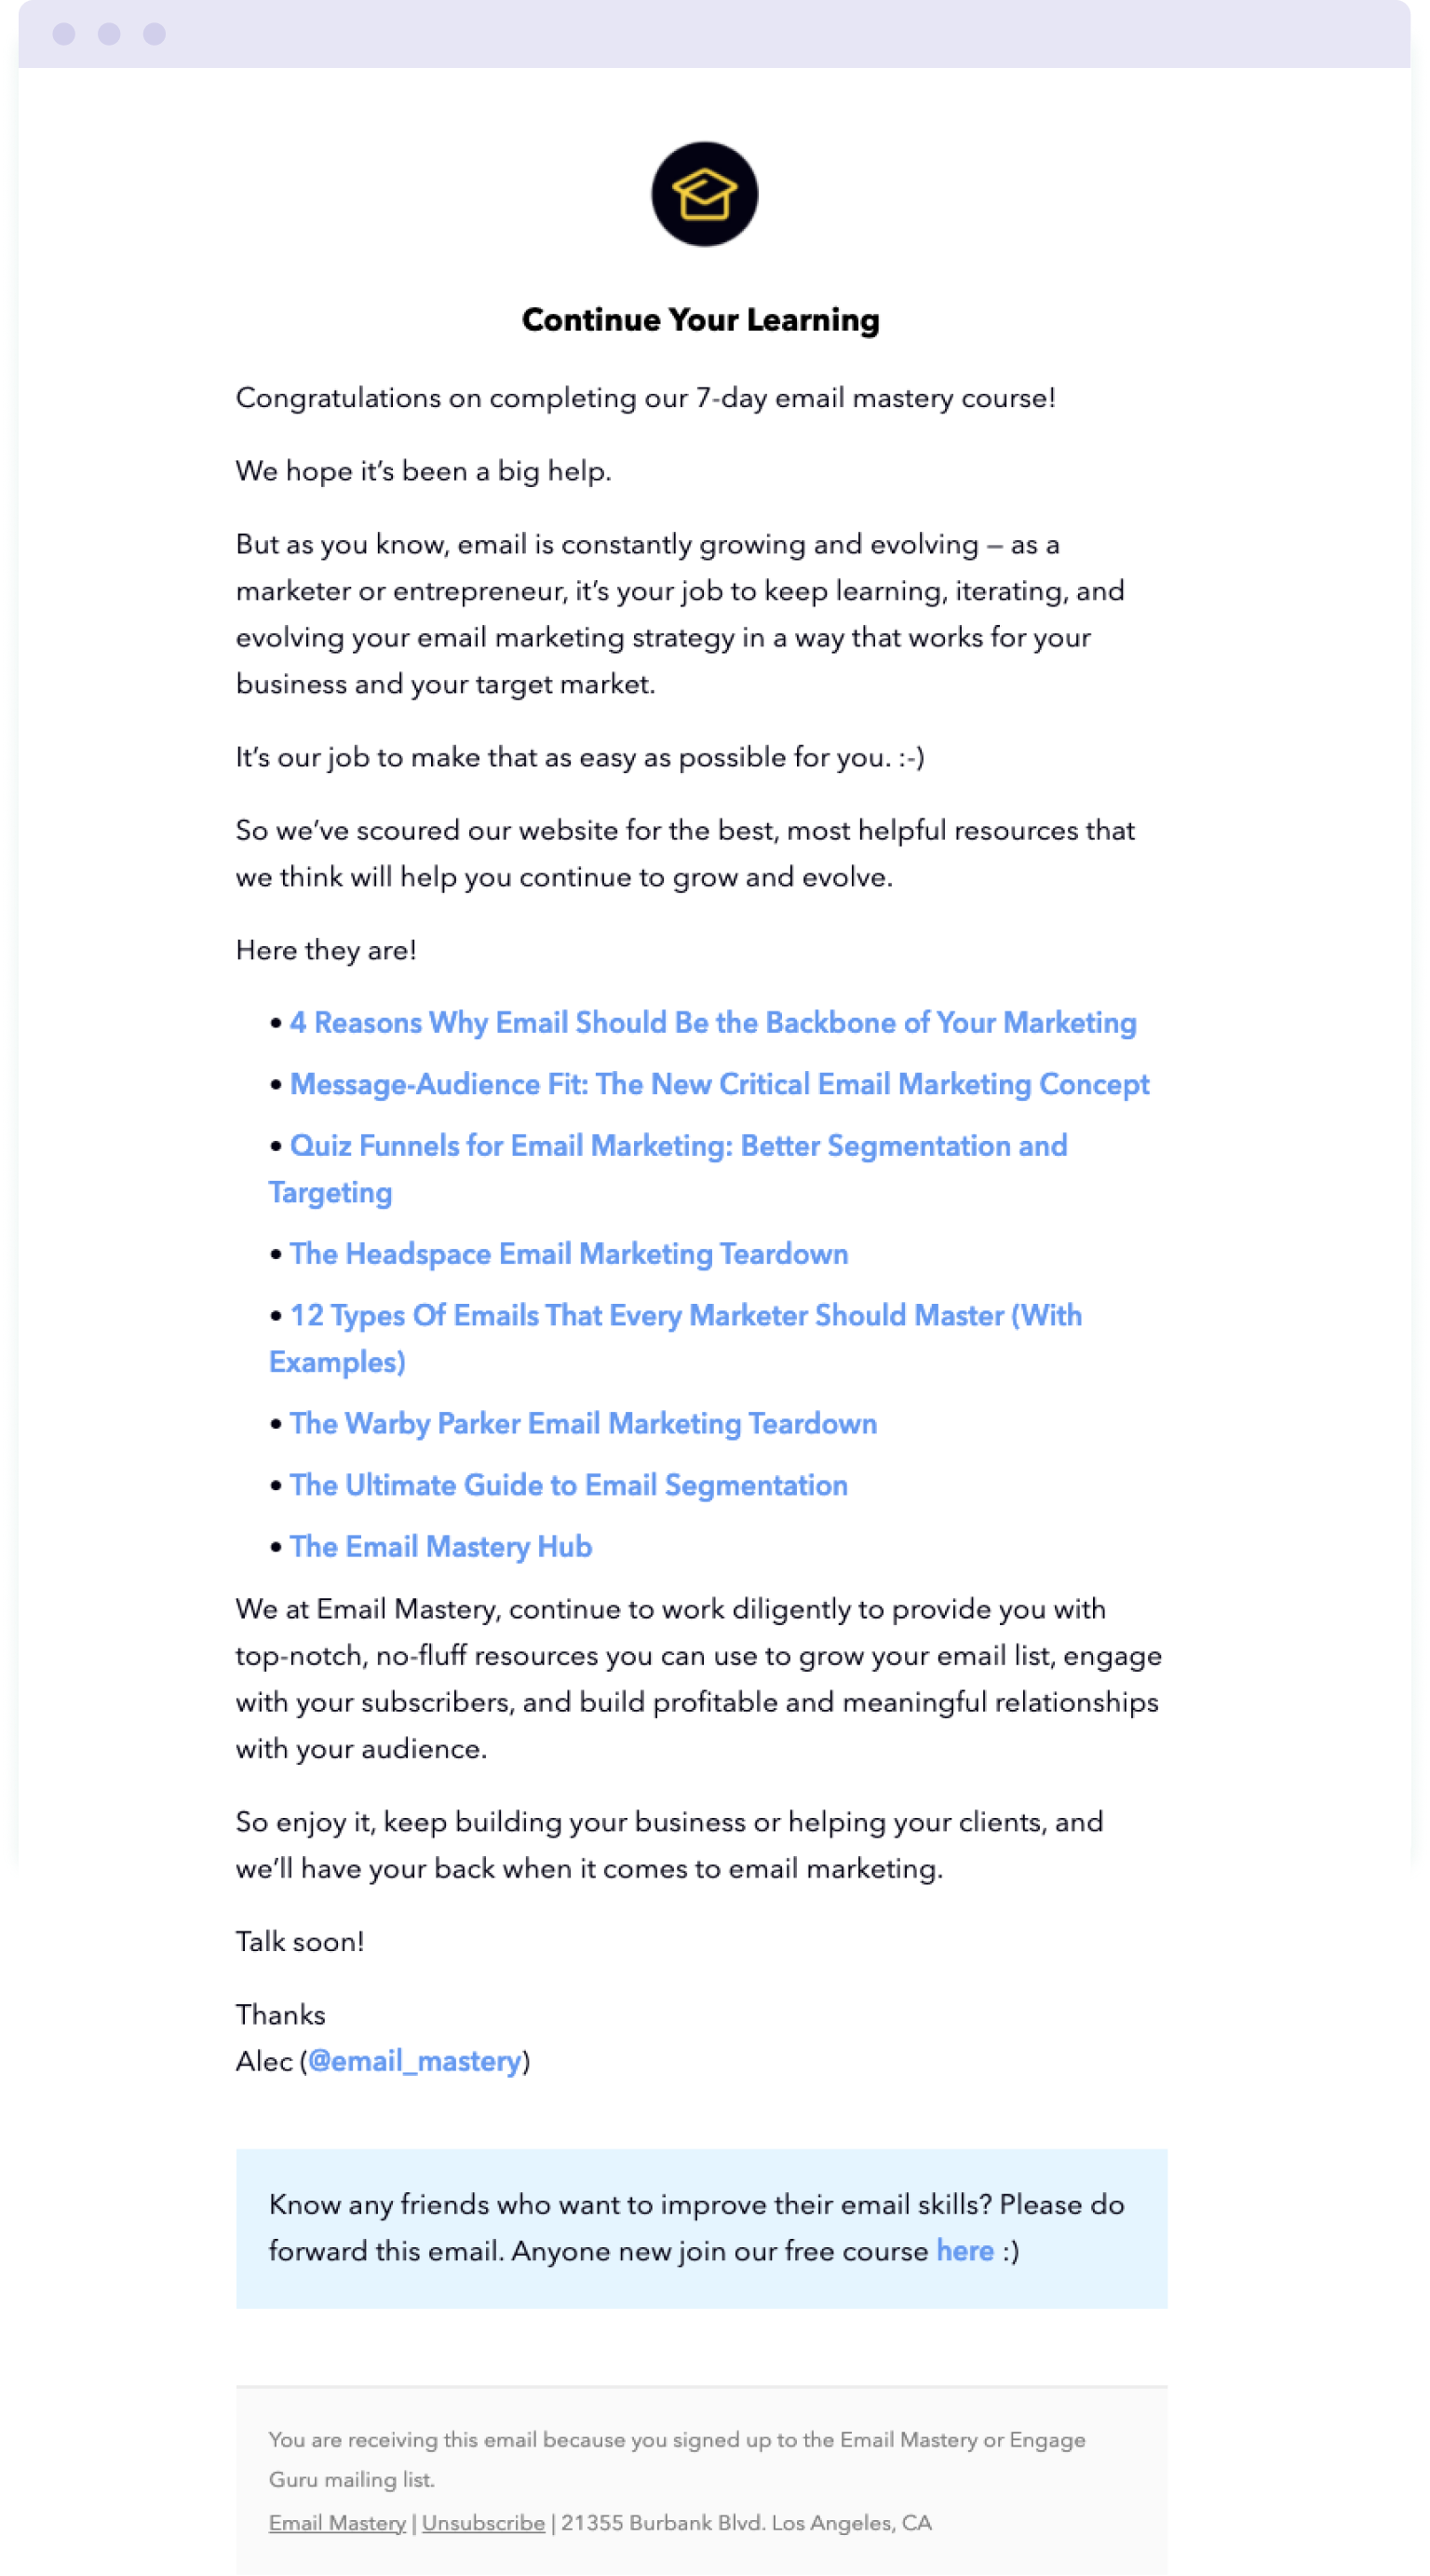 The follow-up congratulations message in the Email Mastery email course